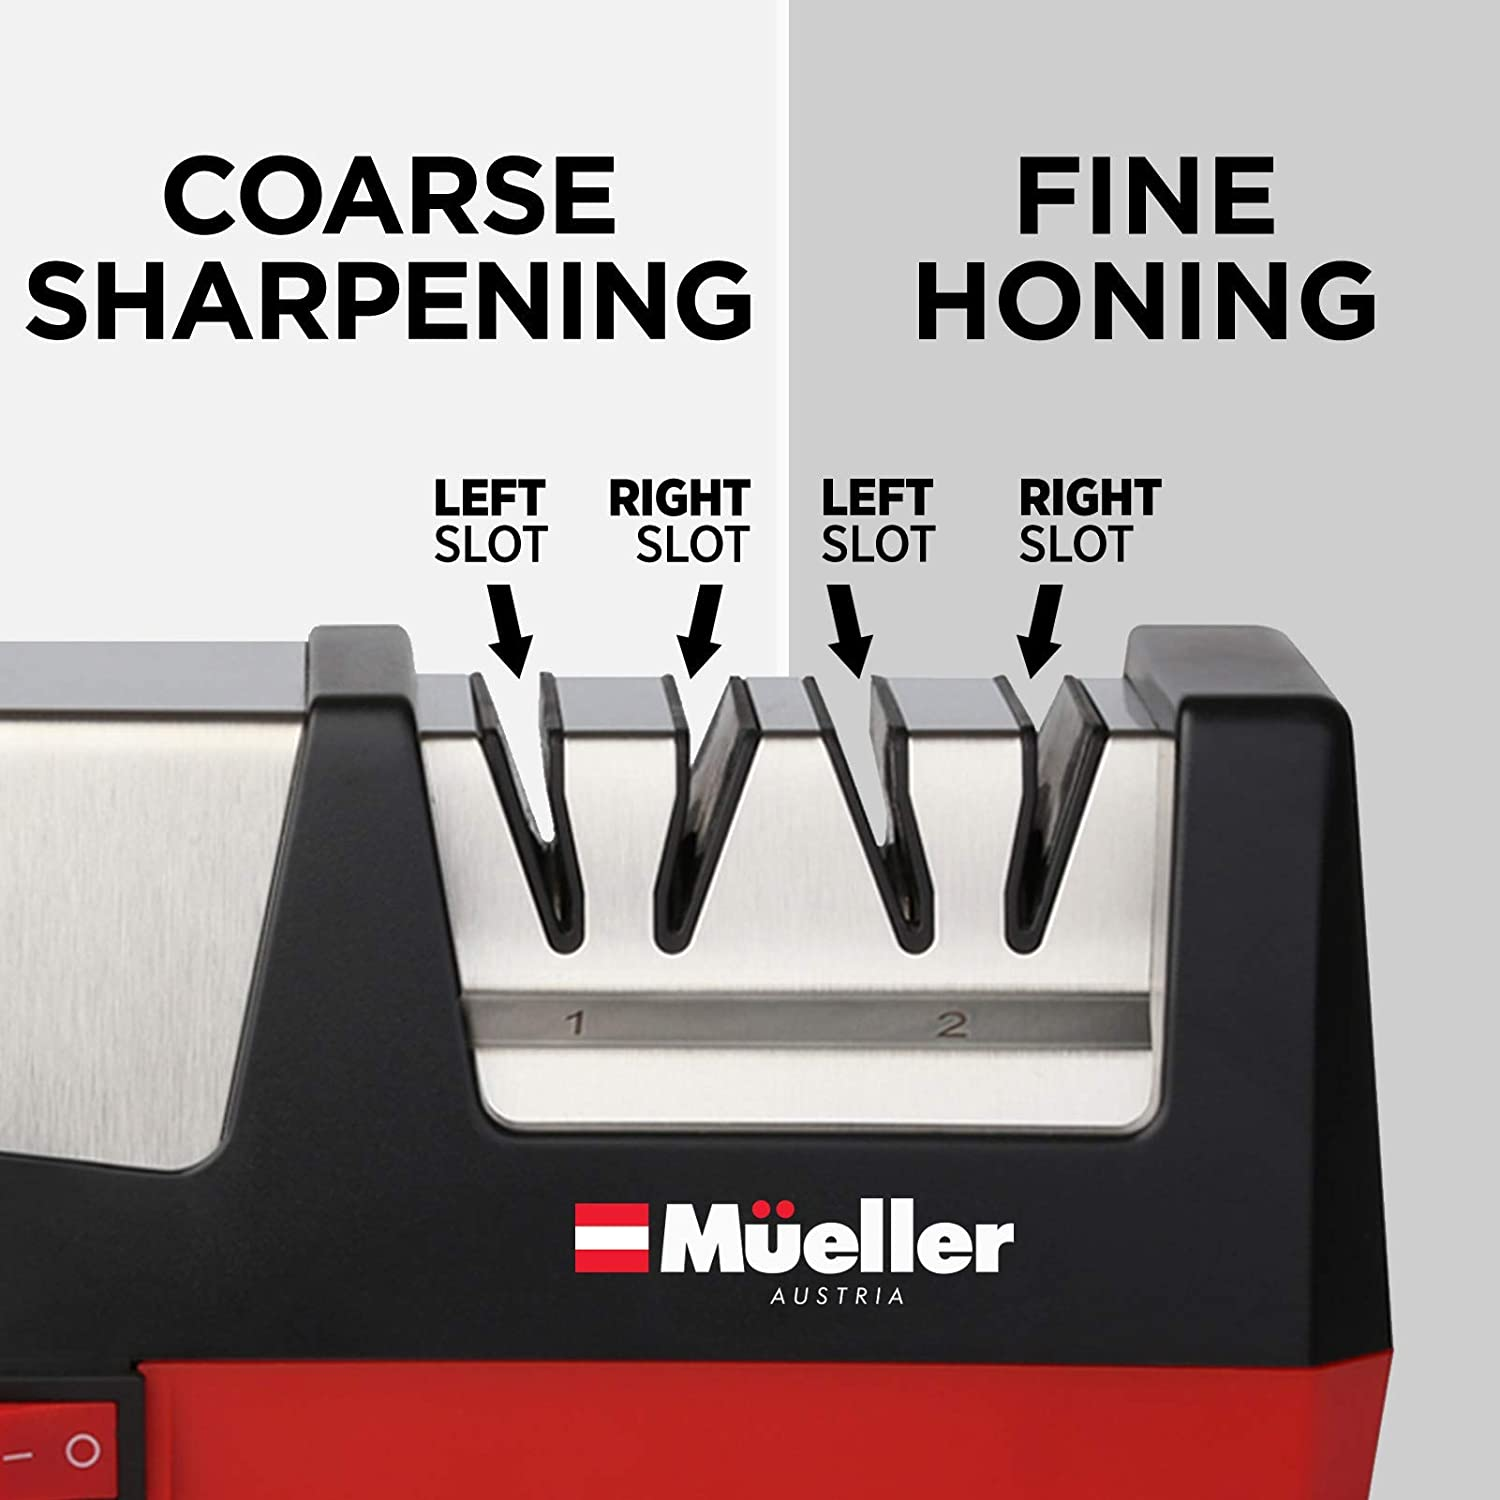 Mueller Professional Electric Knife Sharpener for Straight Knives Diamond Abrasives, Quickly Sharpening, Repair/Restore/Polish Blades: Kitchen & Dining